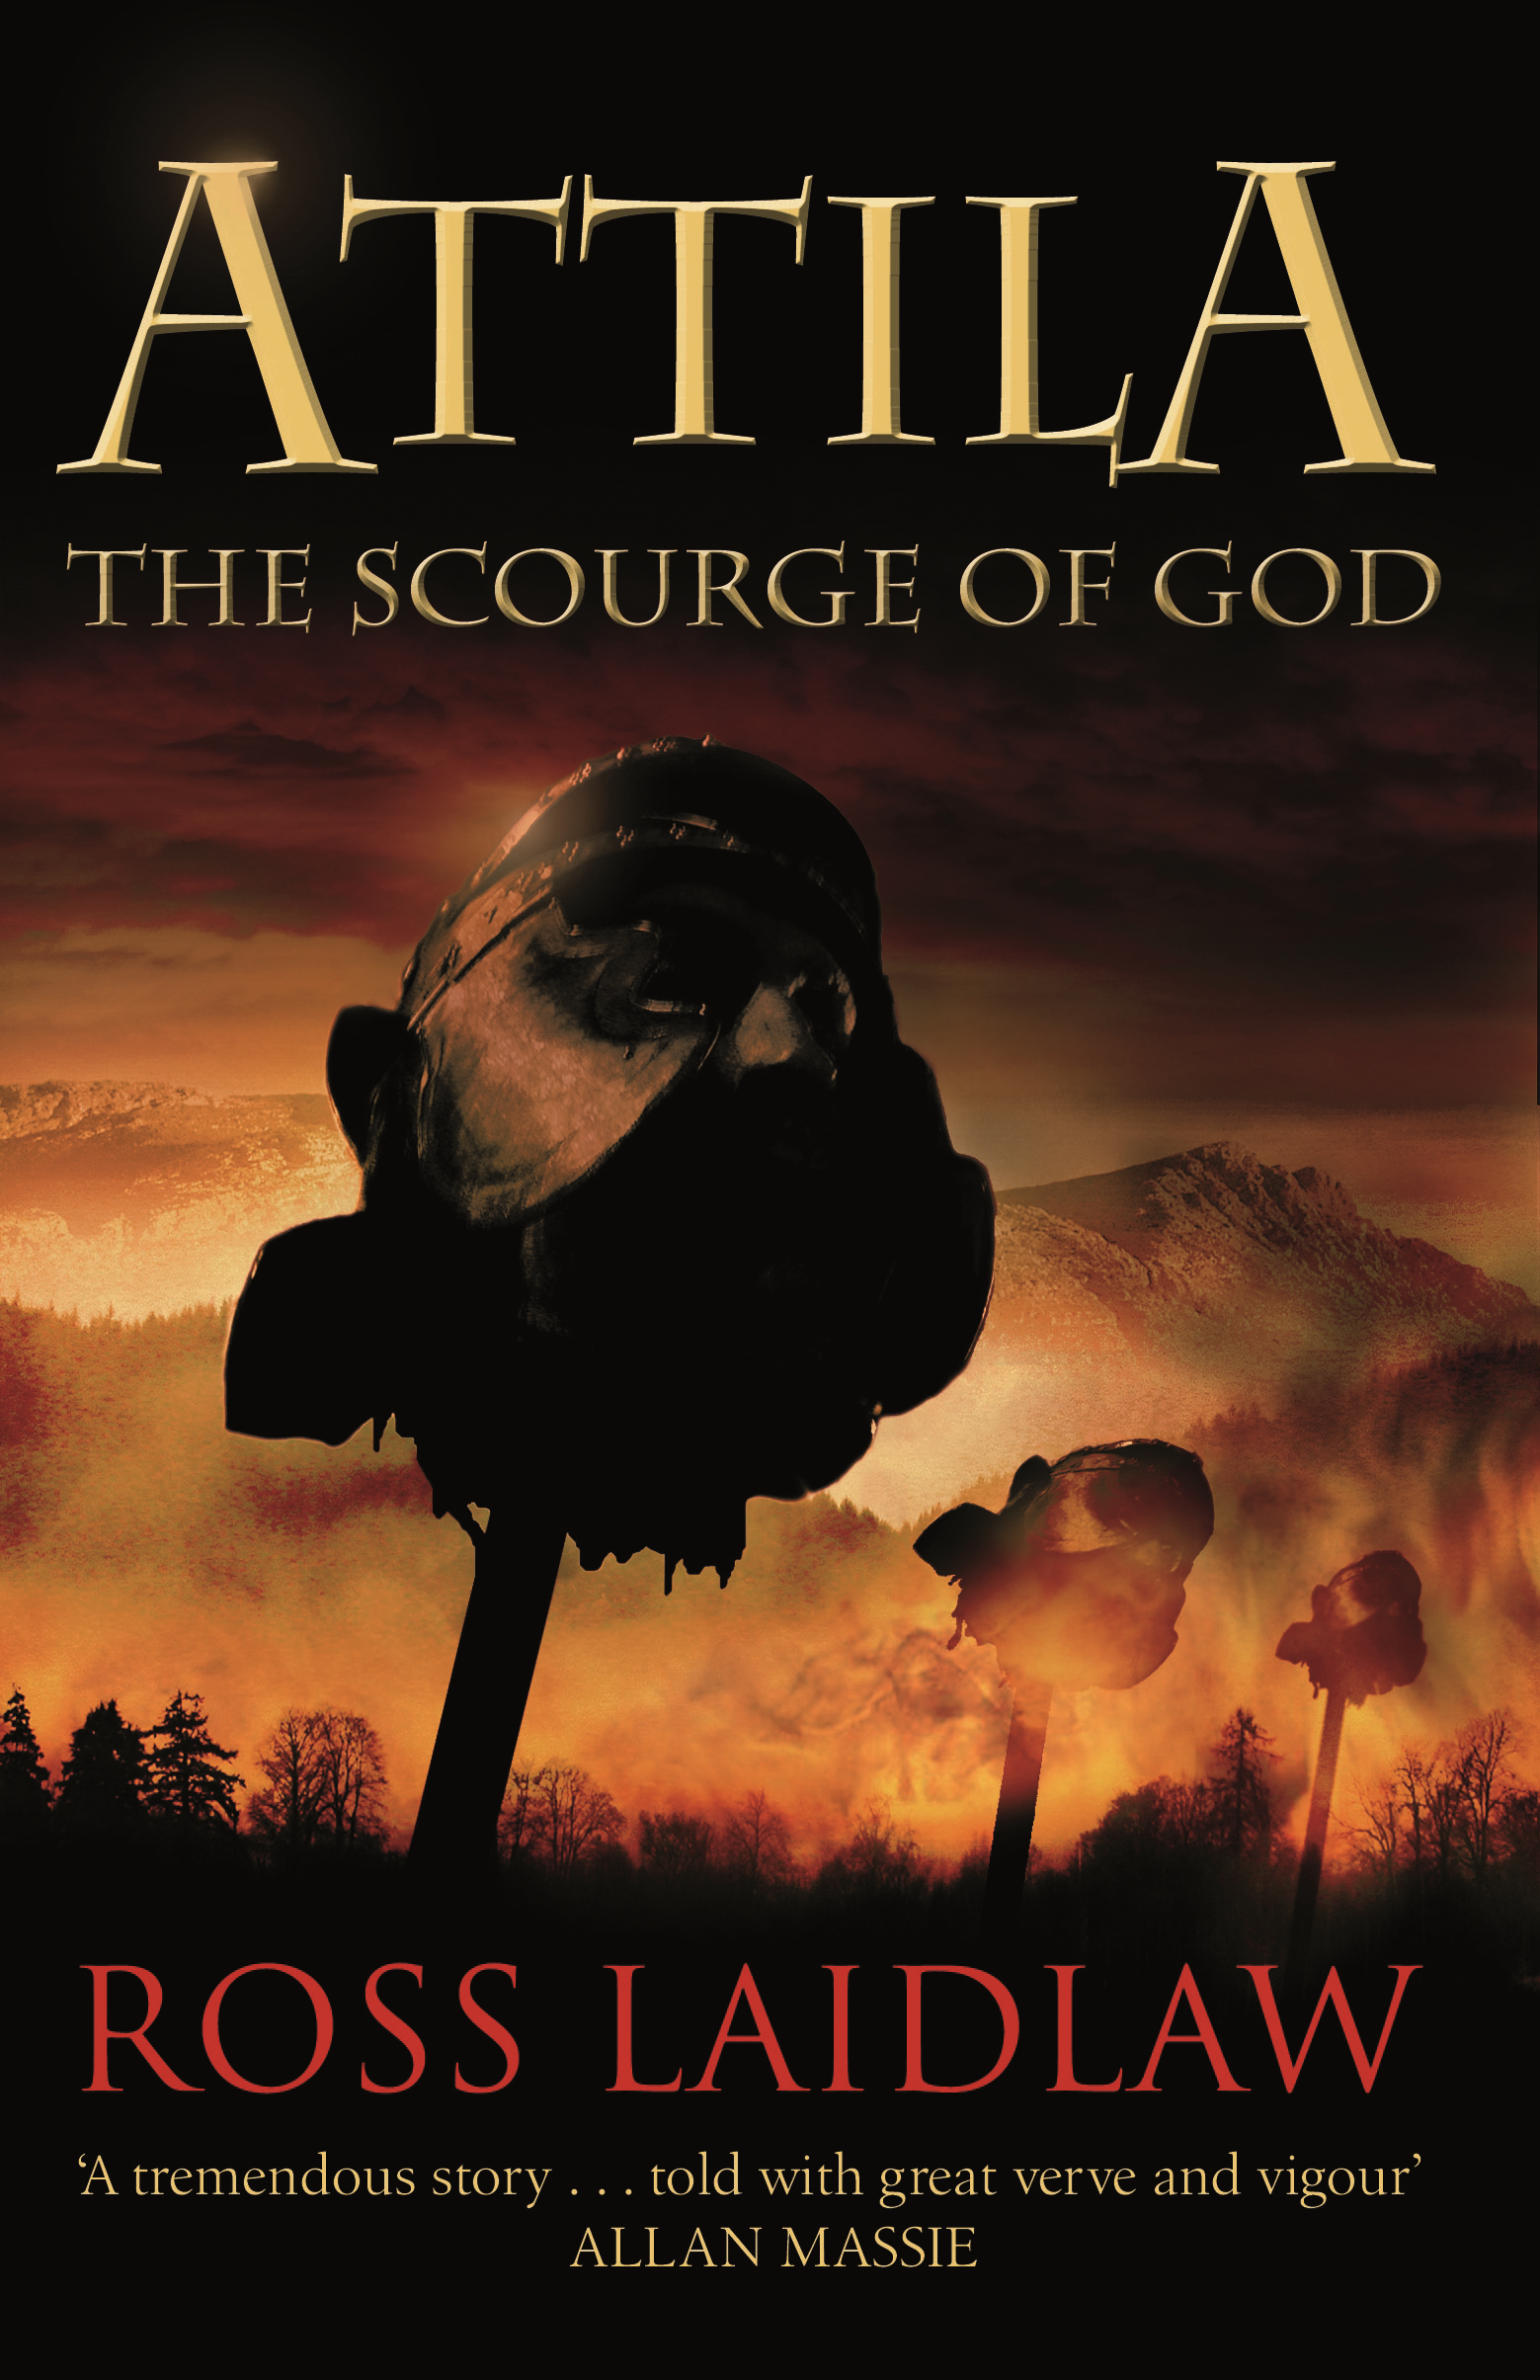 Attila: The Scourge of God By: Ross Laidlaw